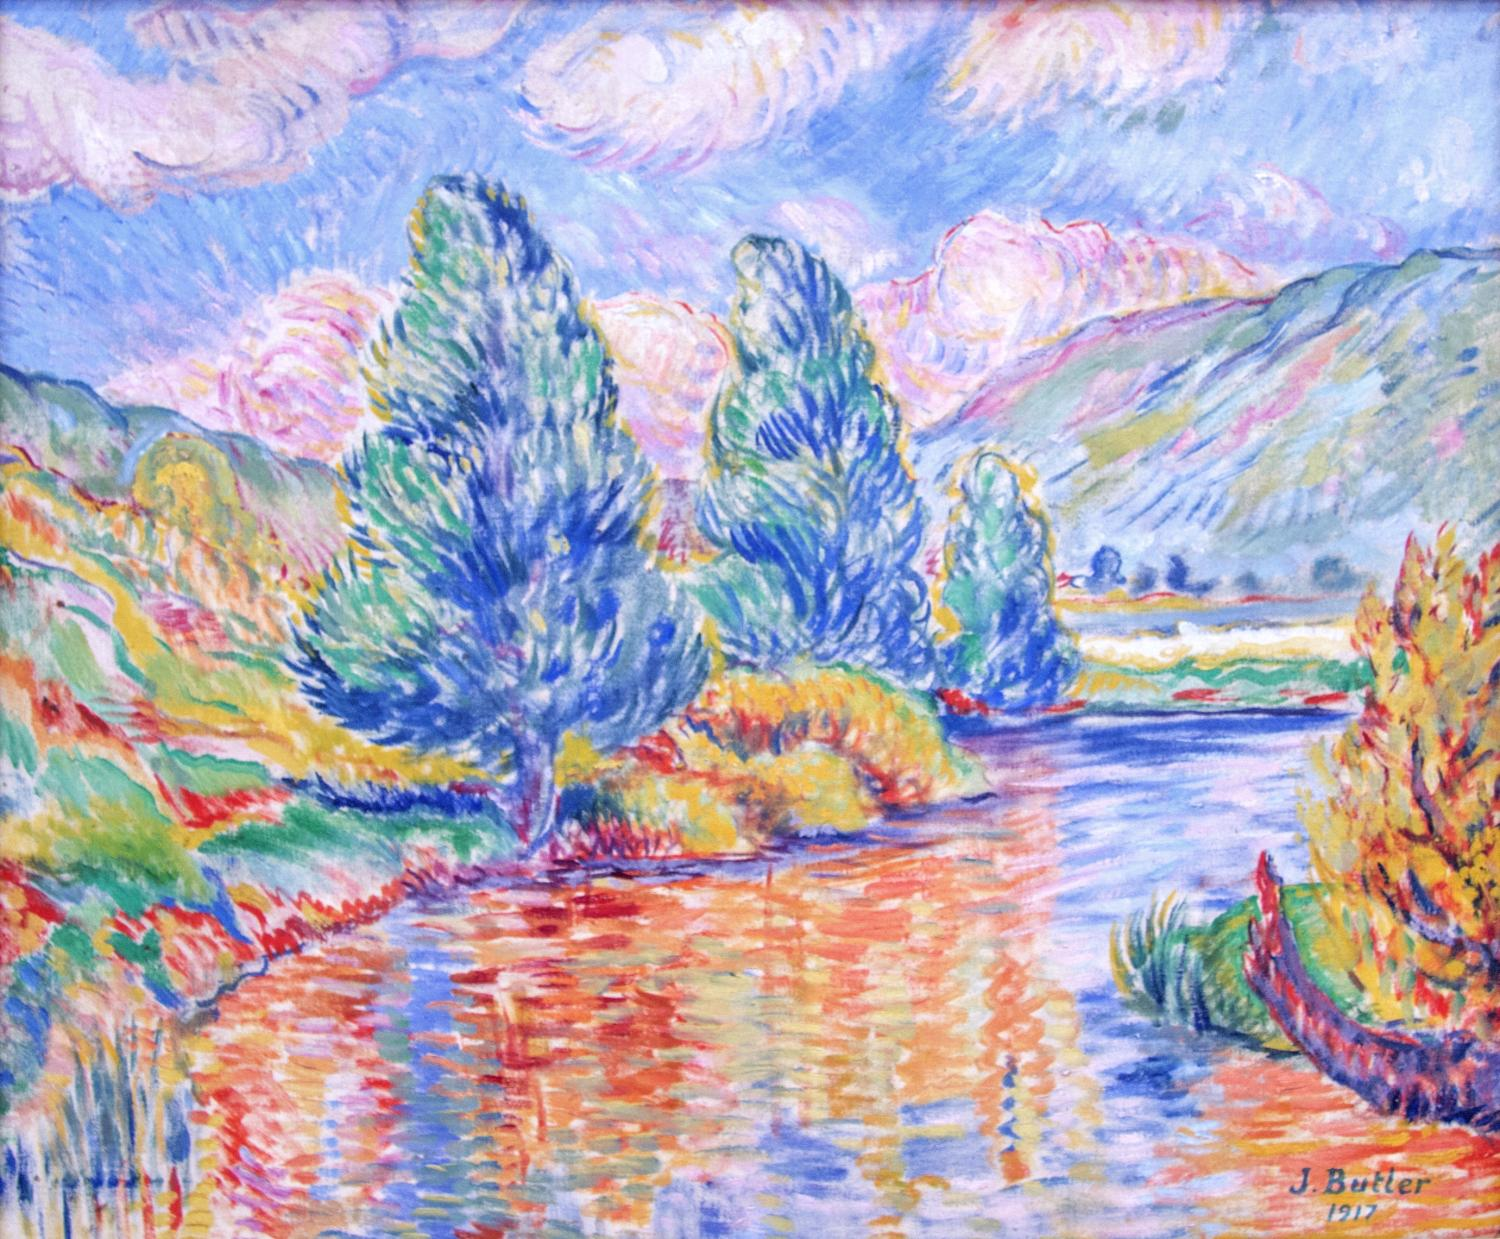 Colorful painting of a lake and trees. It is created with dashes and dabs of paint in a style that gives the impression of the way light and shadow and reflections work with one another.